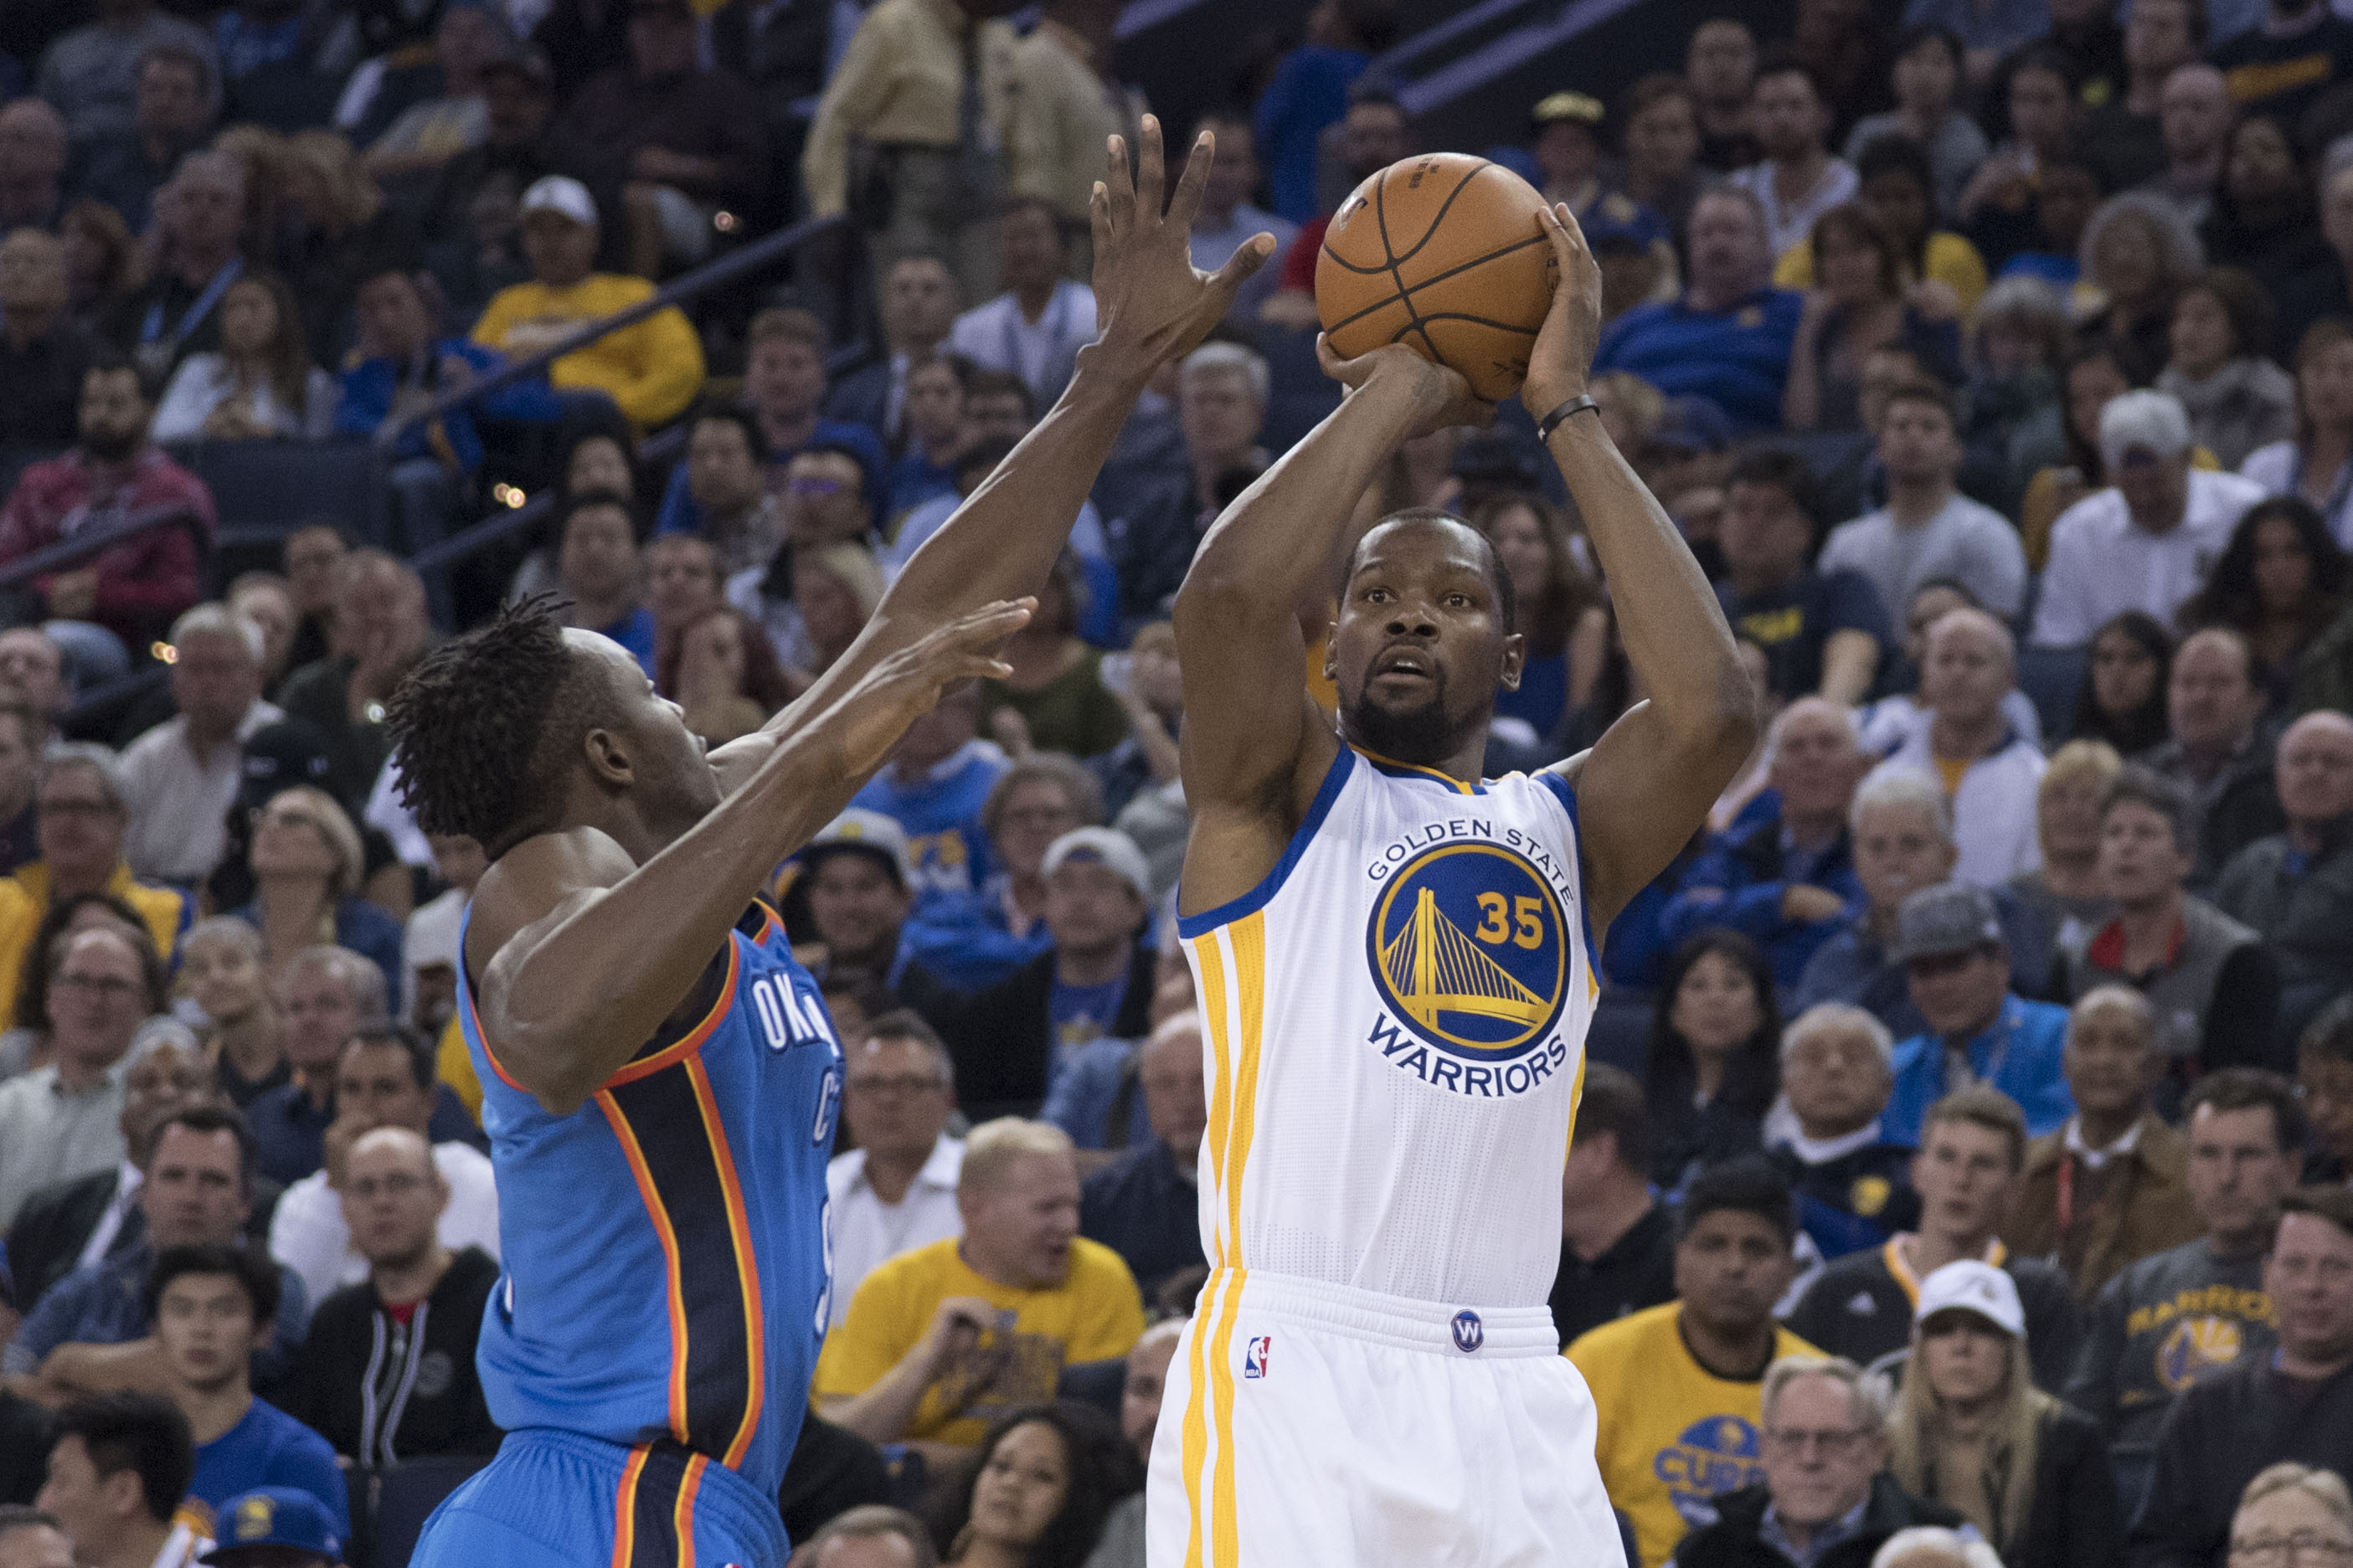 NBA scores 2016: Kevin Durant got angry and crushed the Thunder's undefeated season